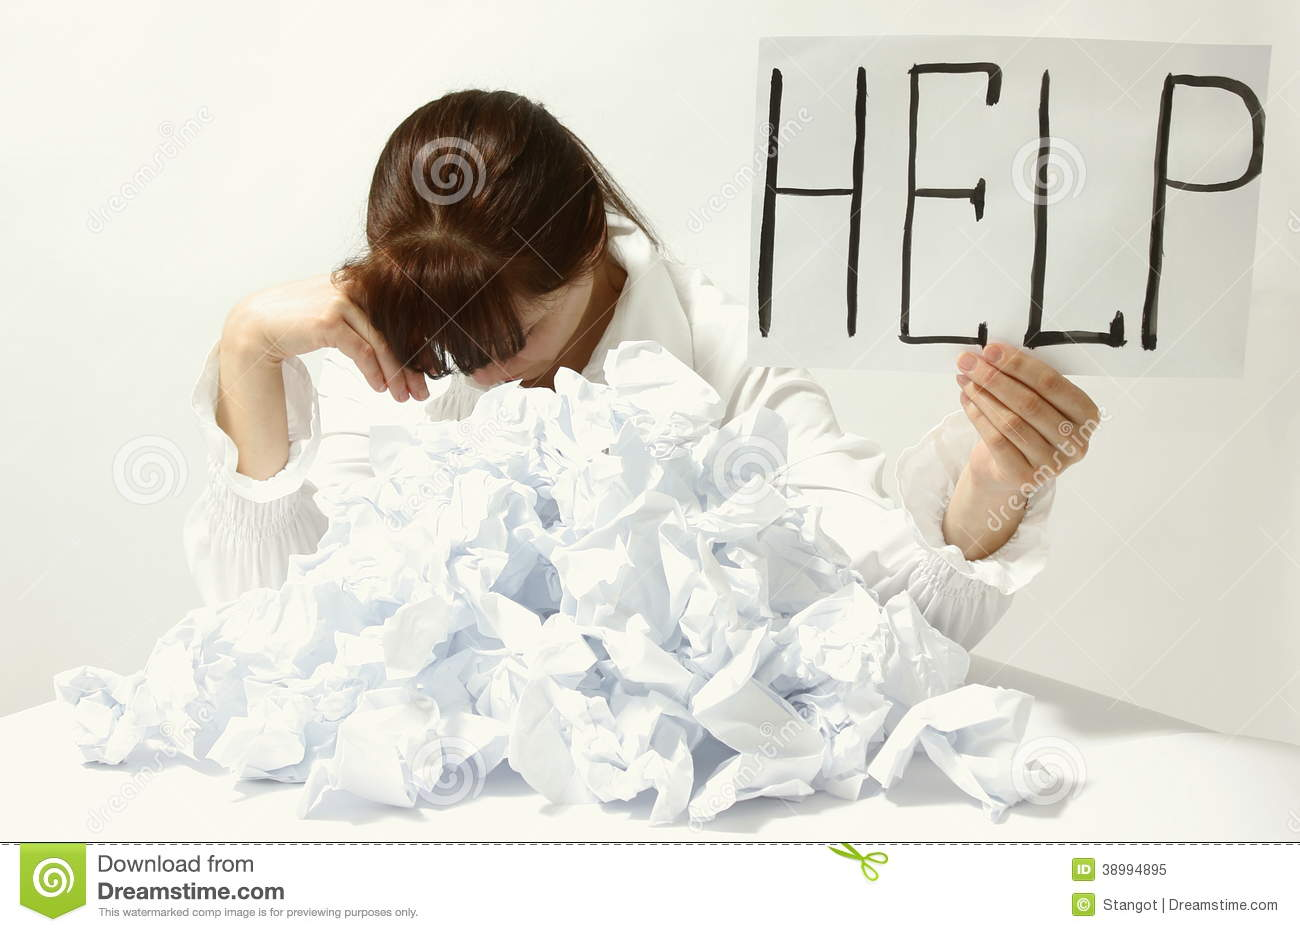 Help with paper.........................................?